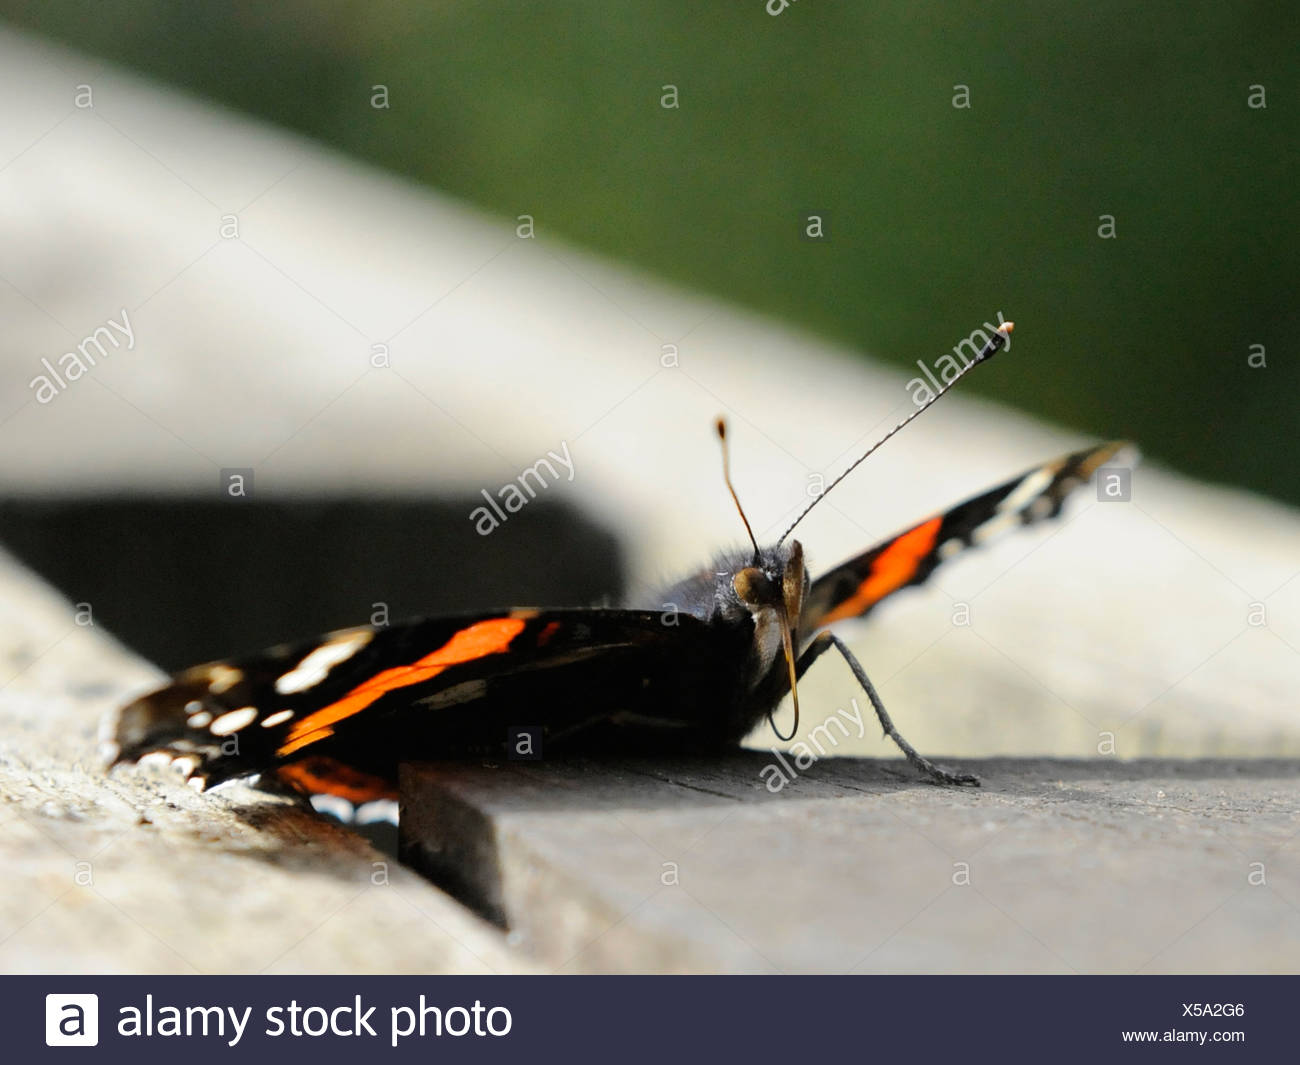 A common British red admiral butterfly showing its probosis - Stock Image